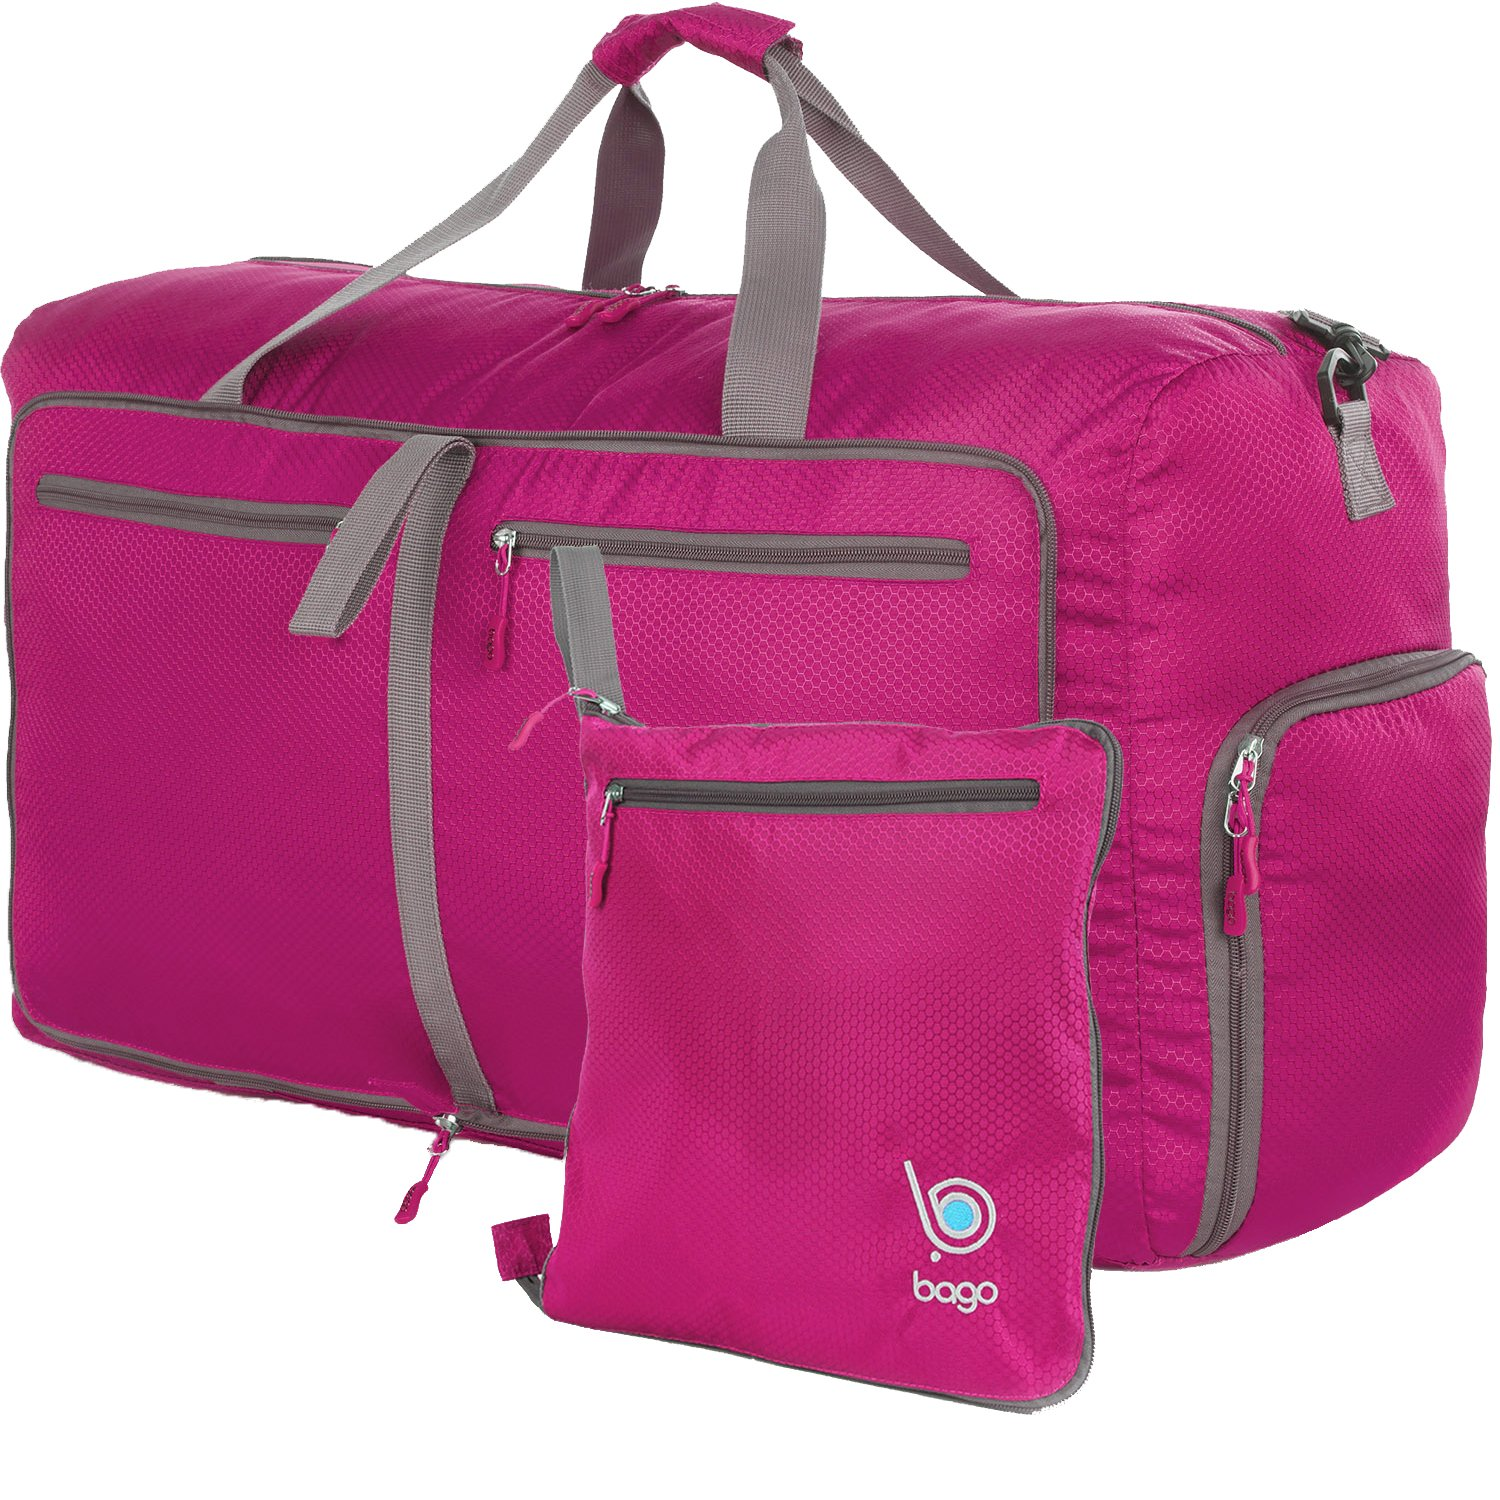 Bago Travel Duffle Bag For Women & Men - Foldable Duffel Bags For Luggage Gym Sports (Large 27'',Pink)